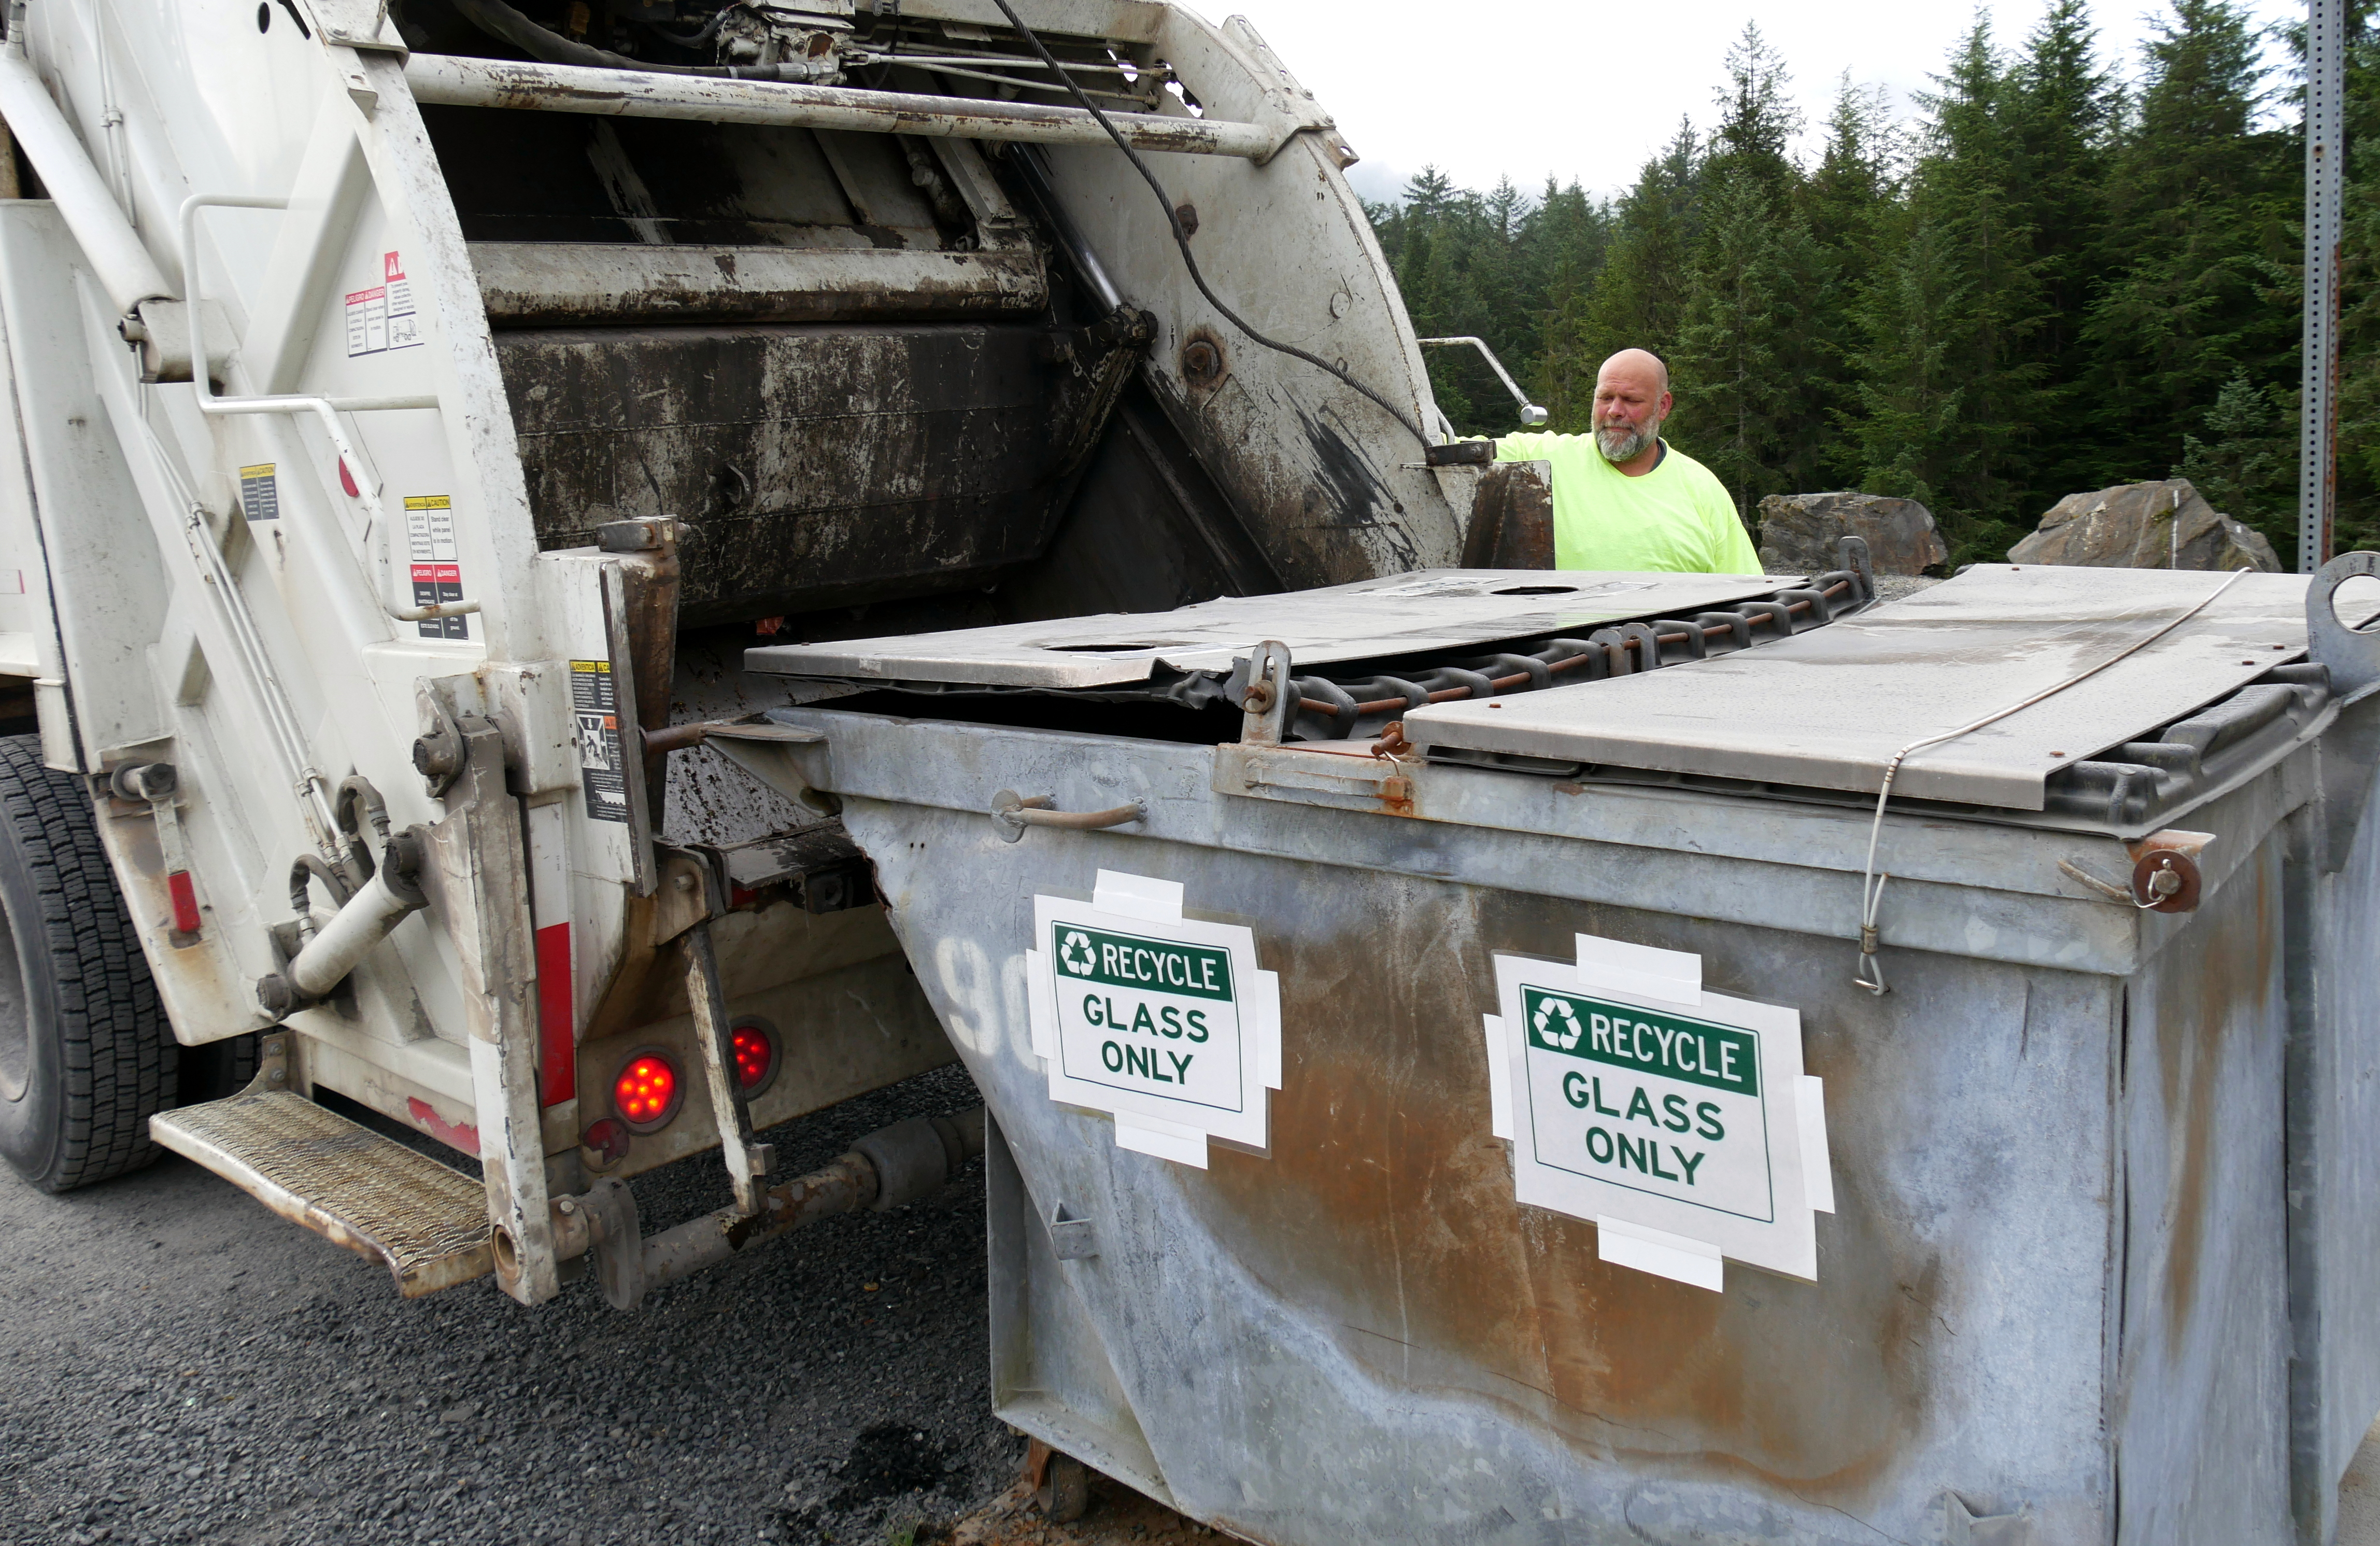 Petersburg Public Works employee, Kevin Granberg, loads glass into a dump truck to take to the landfill. (Photo by Angela Denning/KFSK)